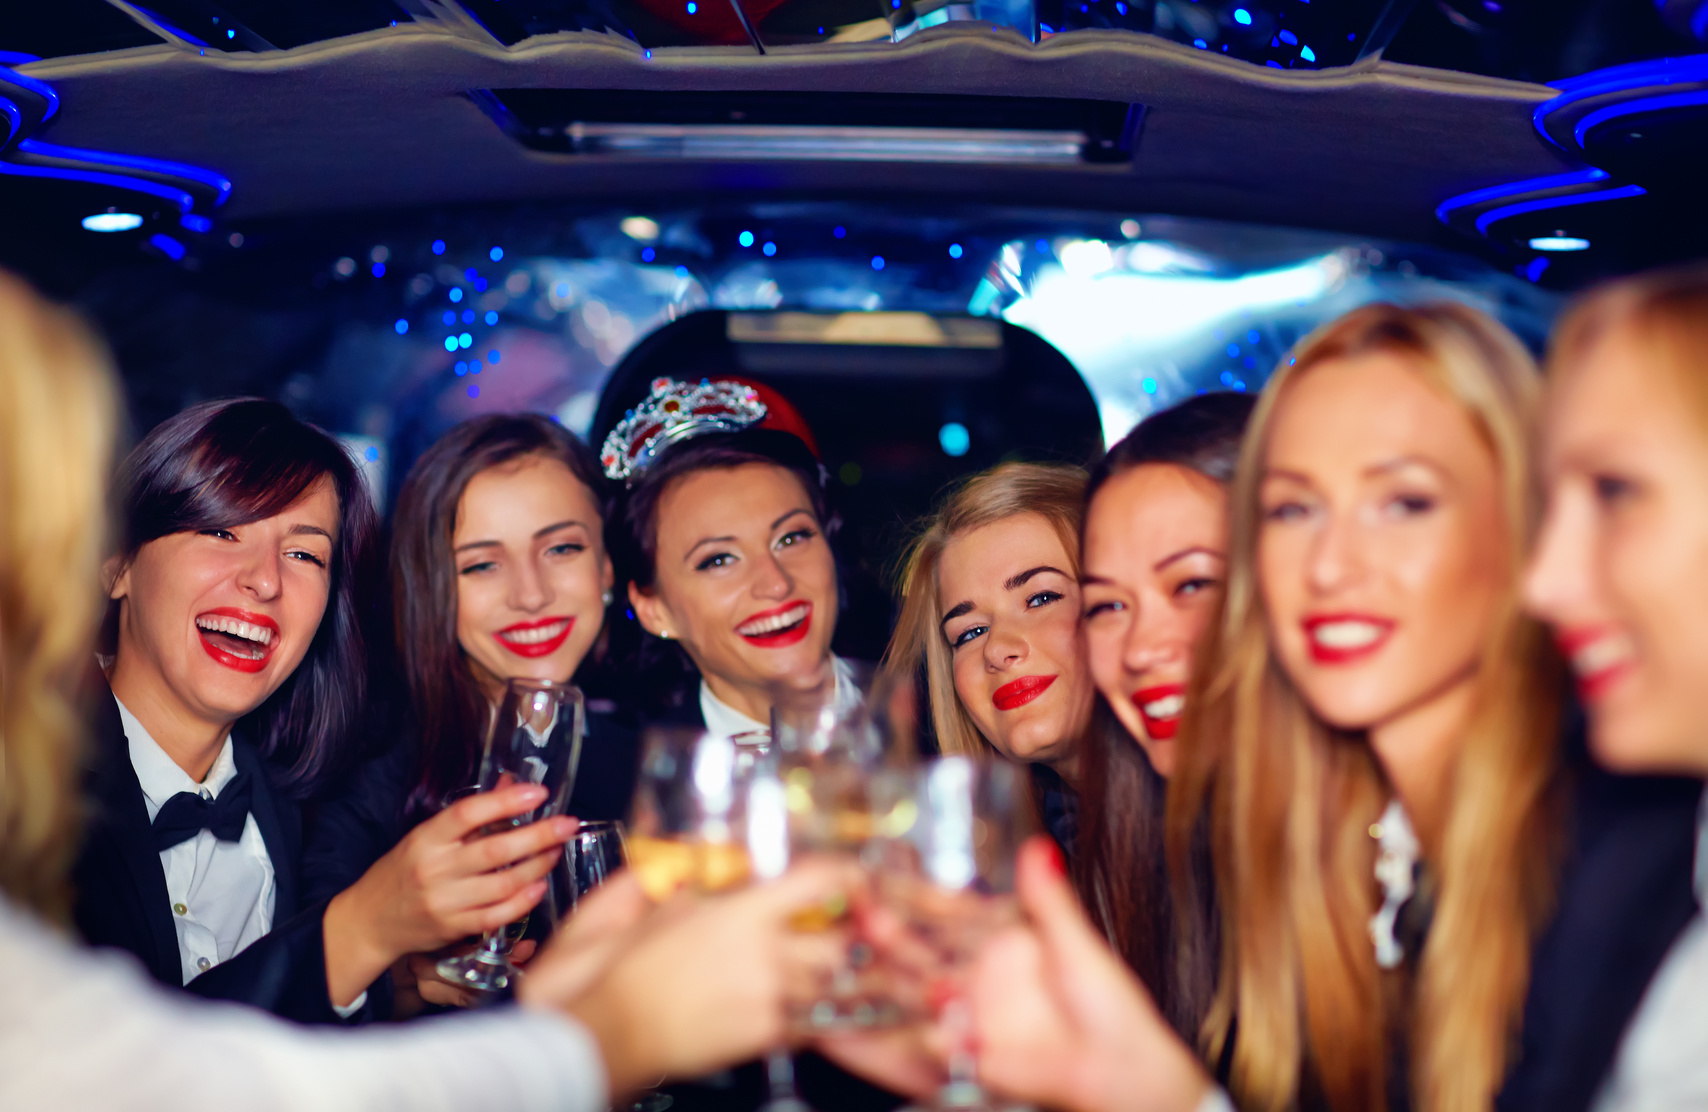 Limo Prom Should You Rent A Limo For Prom A Executive Limousine